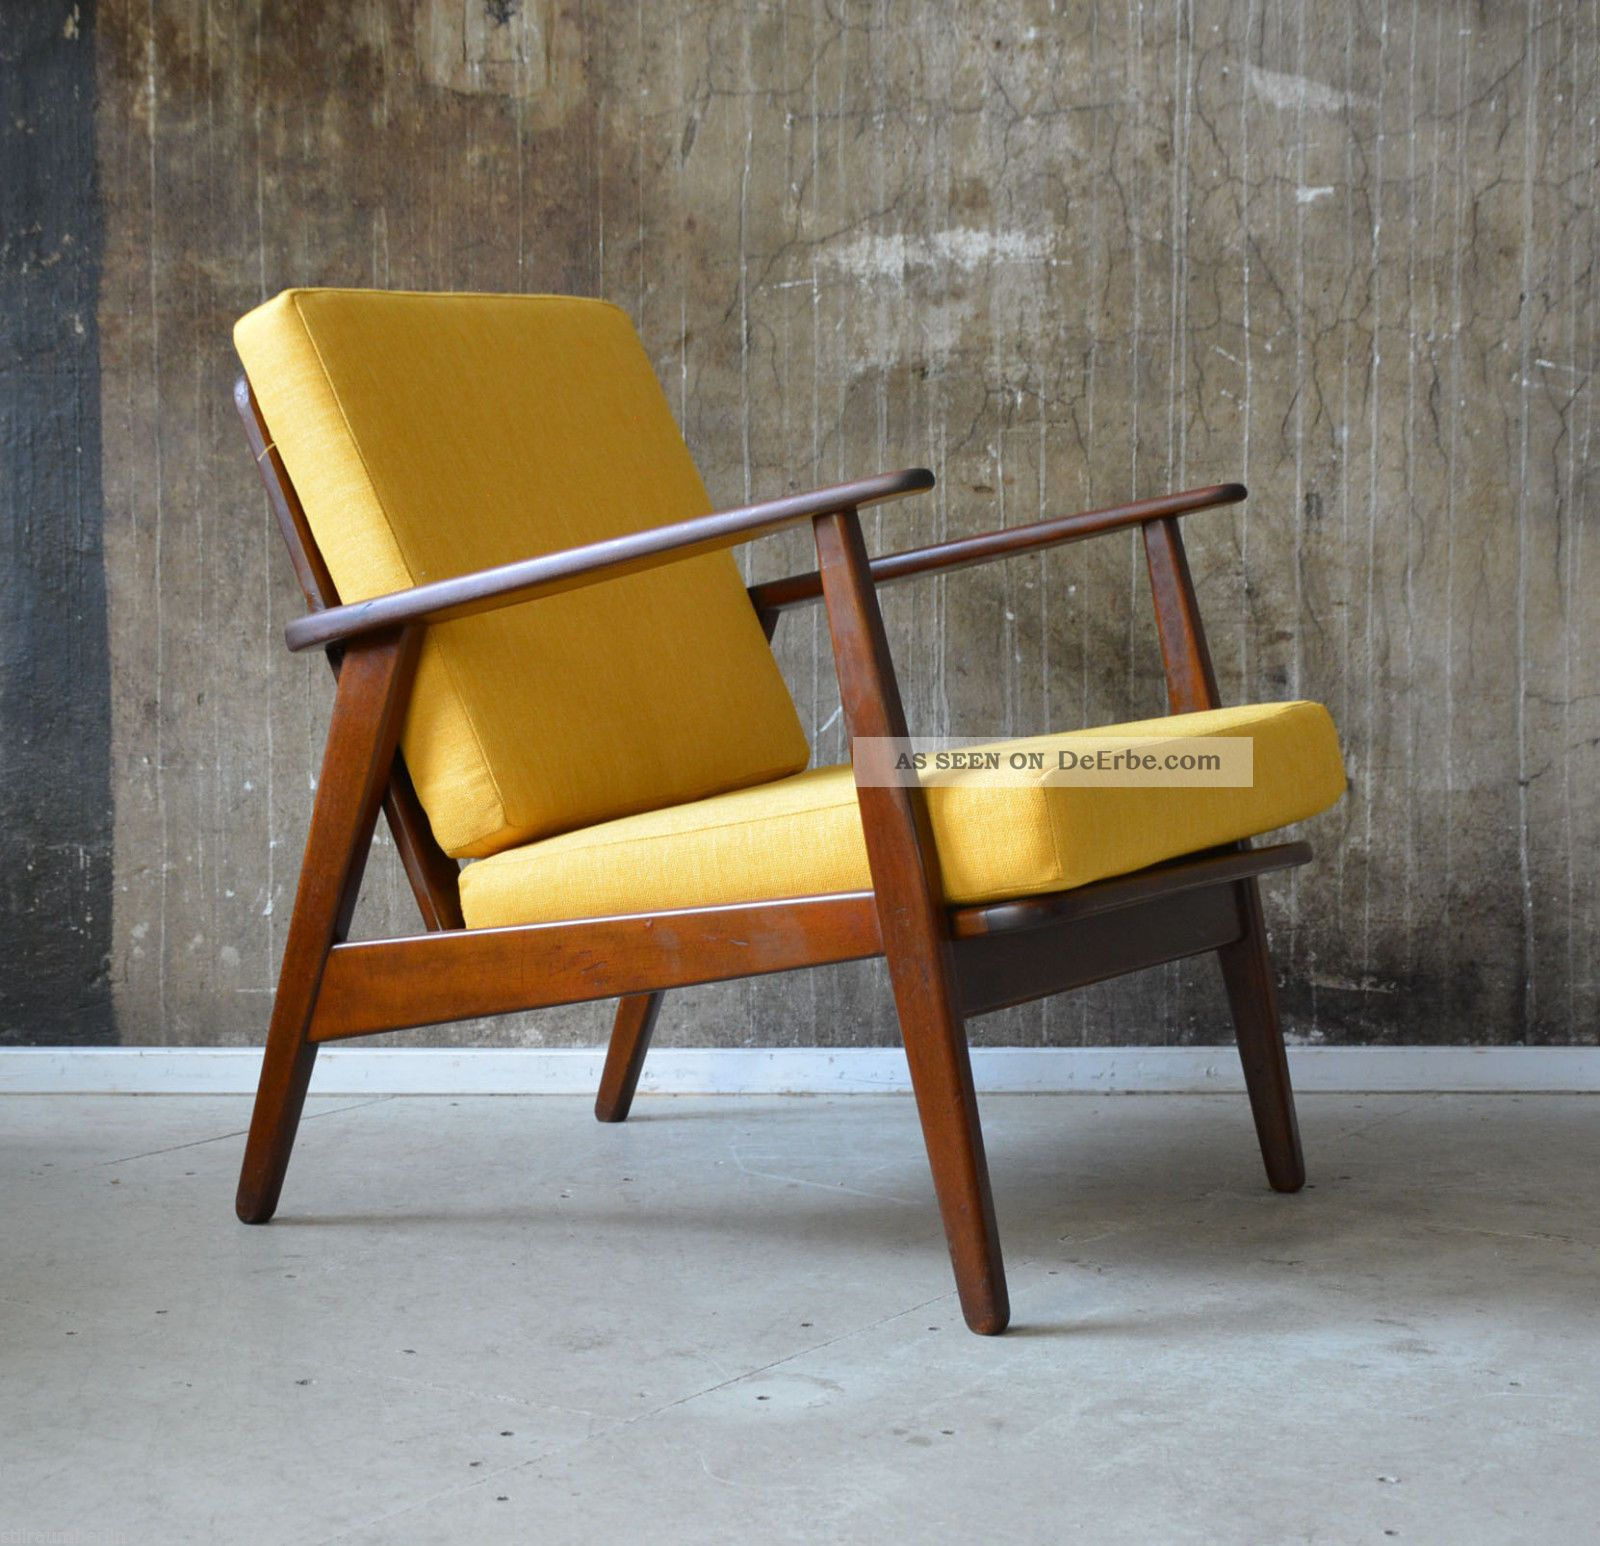 60er teak sessel danish design 60s easy chair vintage